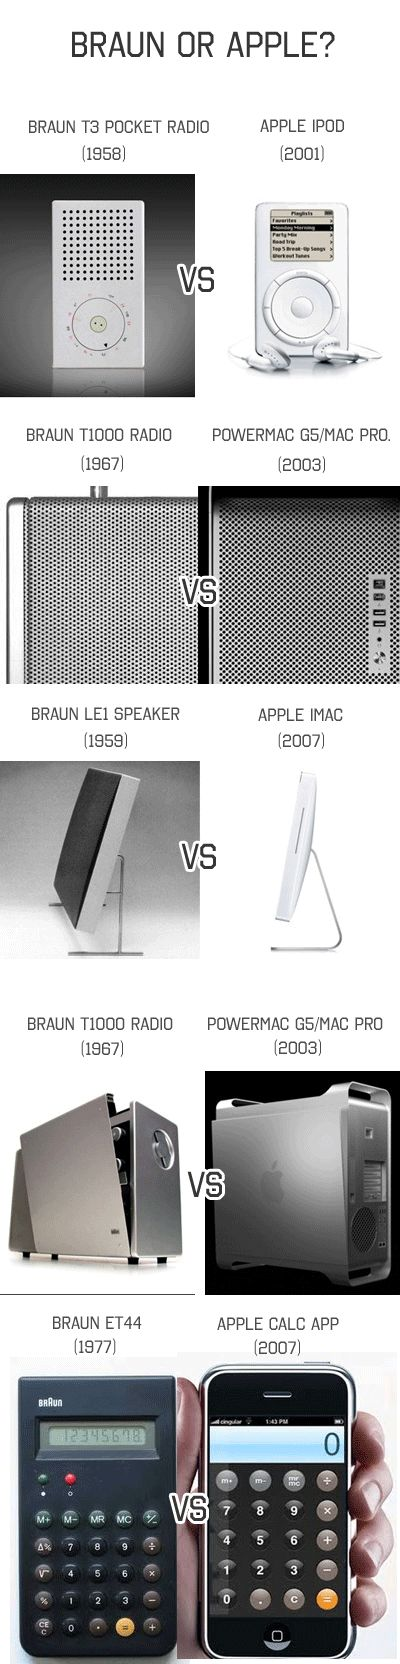 Braun or Apple? This shows how Apple's Head of design Jonathan Ive is heavily Inspired by the Brain behind Braun's products, Dieter Rams